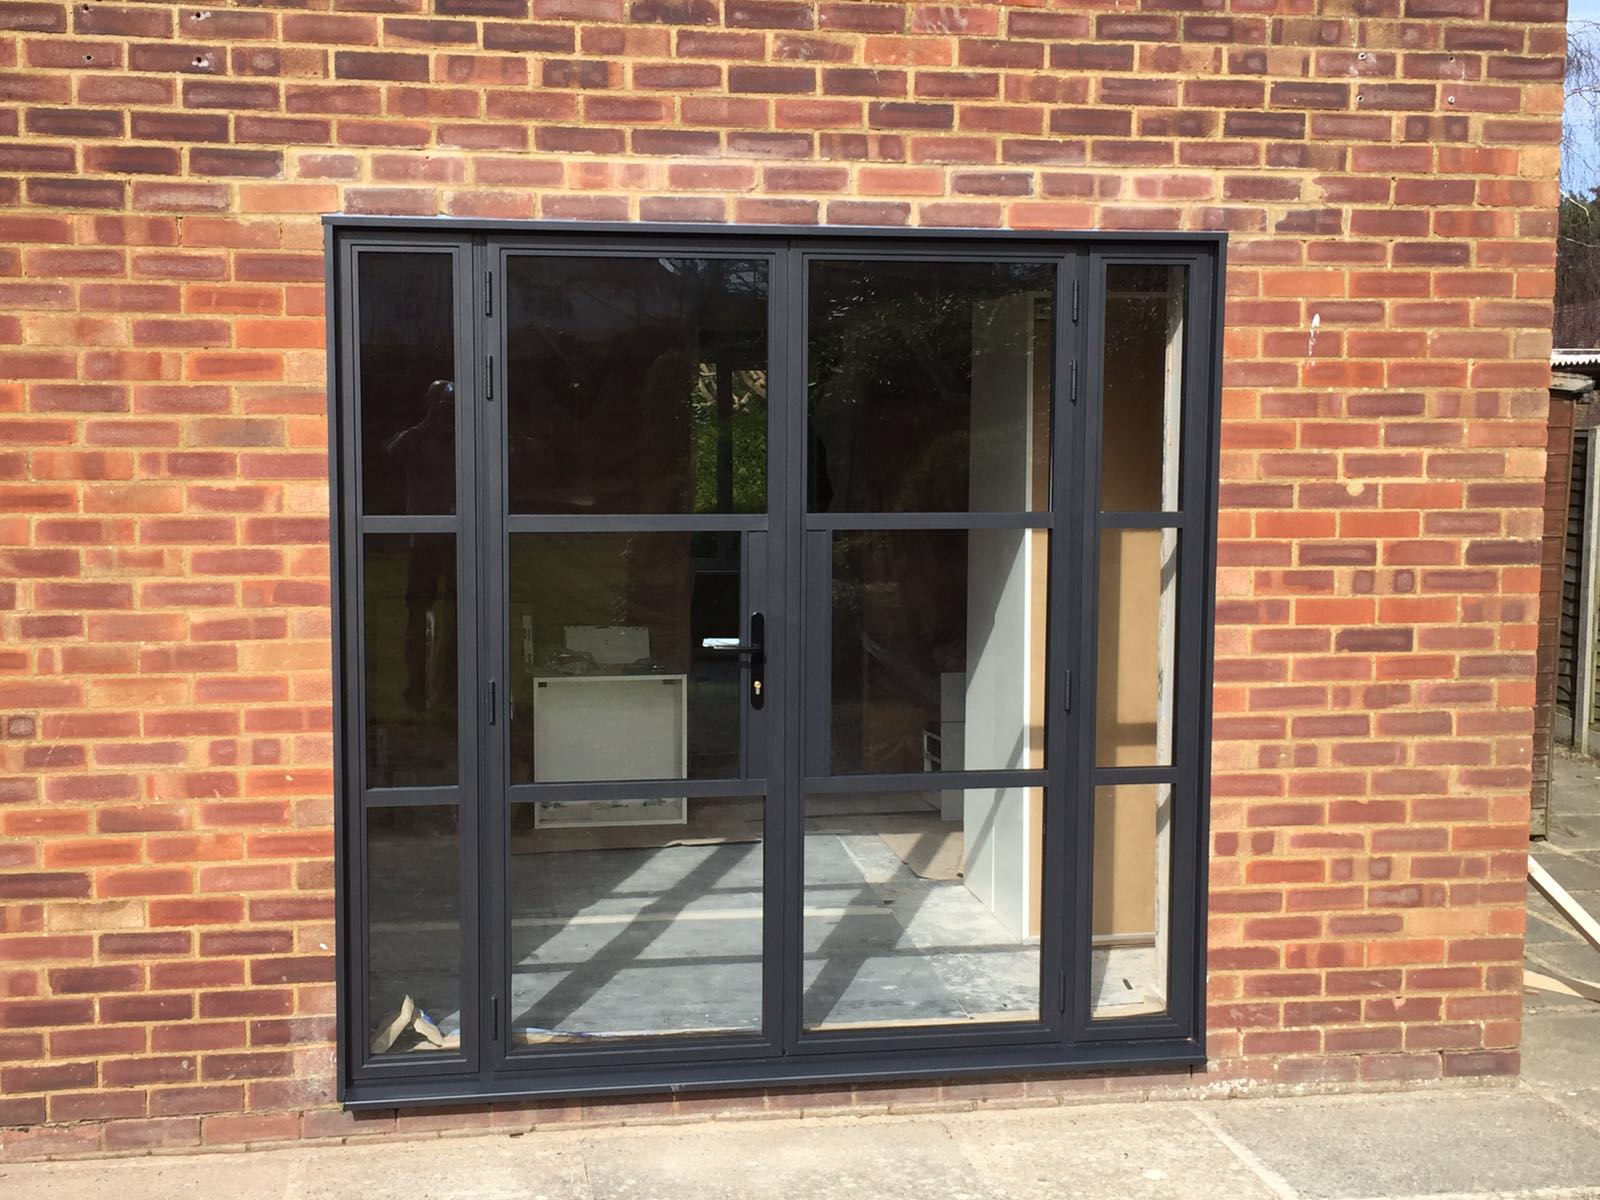 Smart aluminium heritage 47 windows doors installed dwl for Window and door company